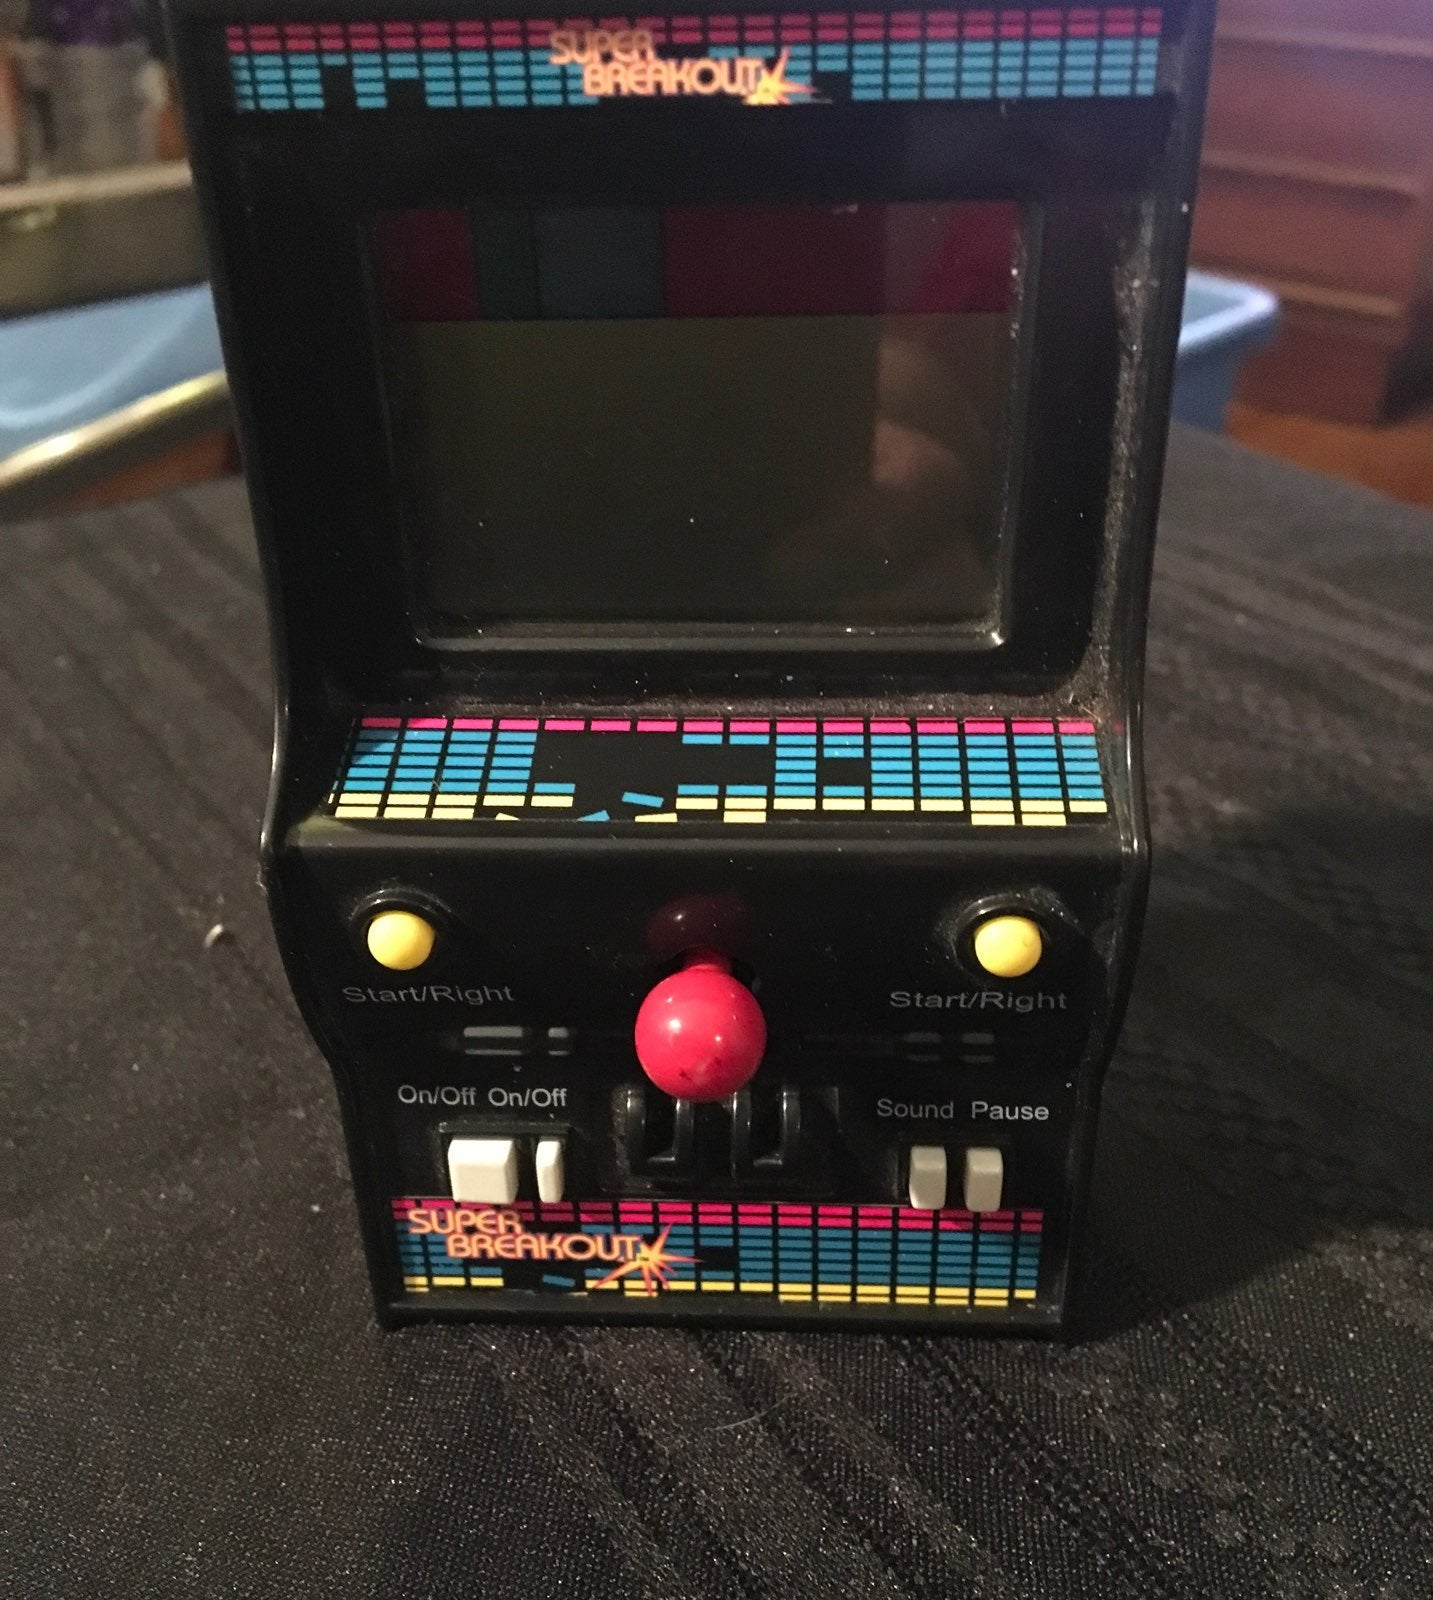 Atari Super Breakout Handheld Game